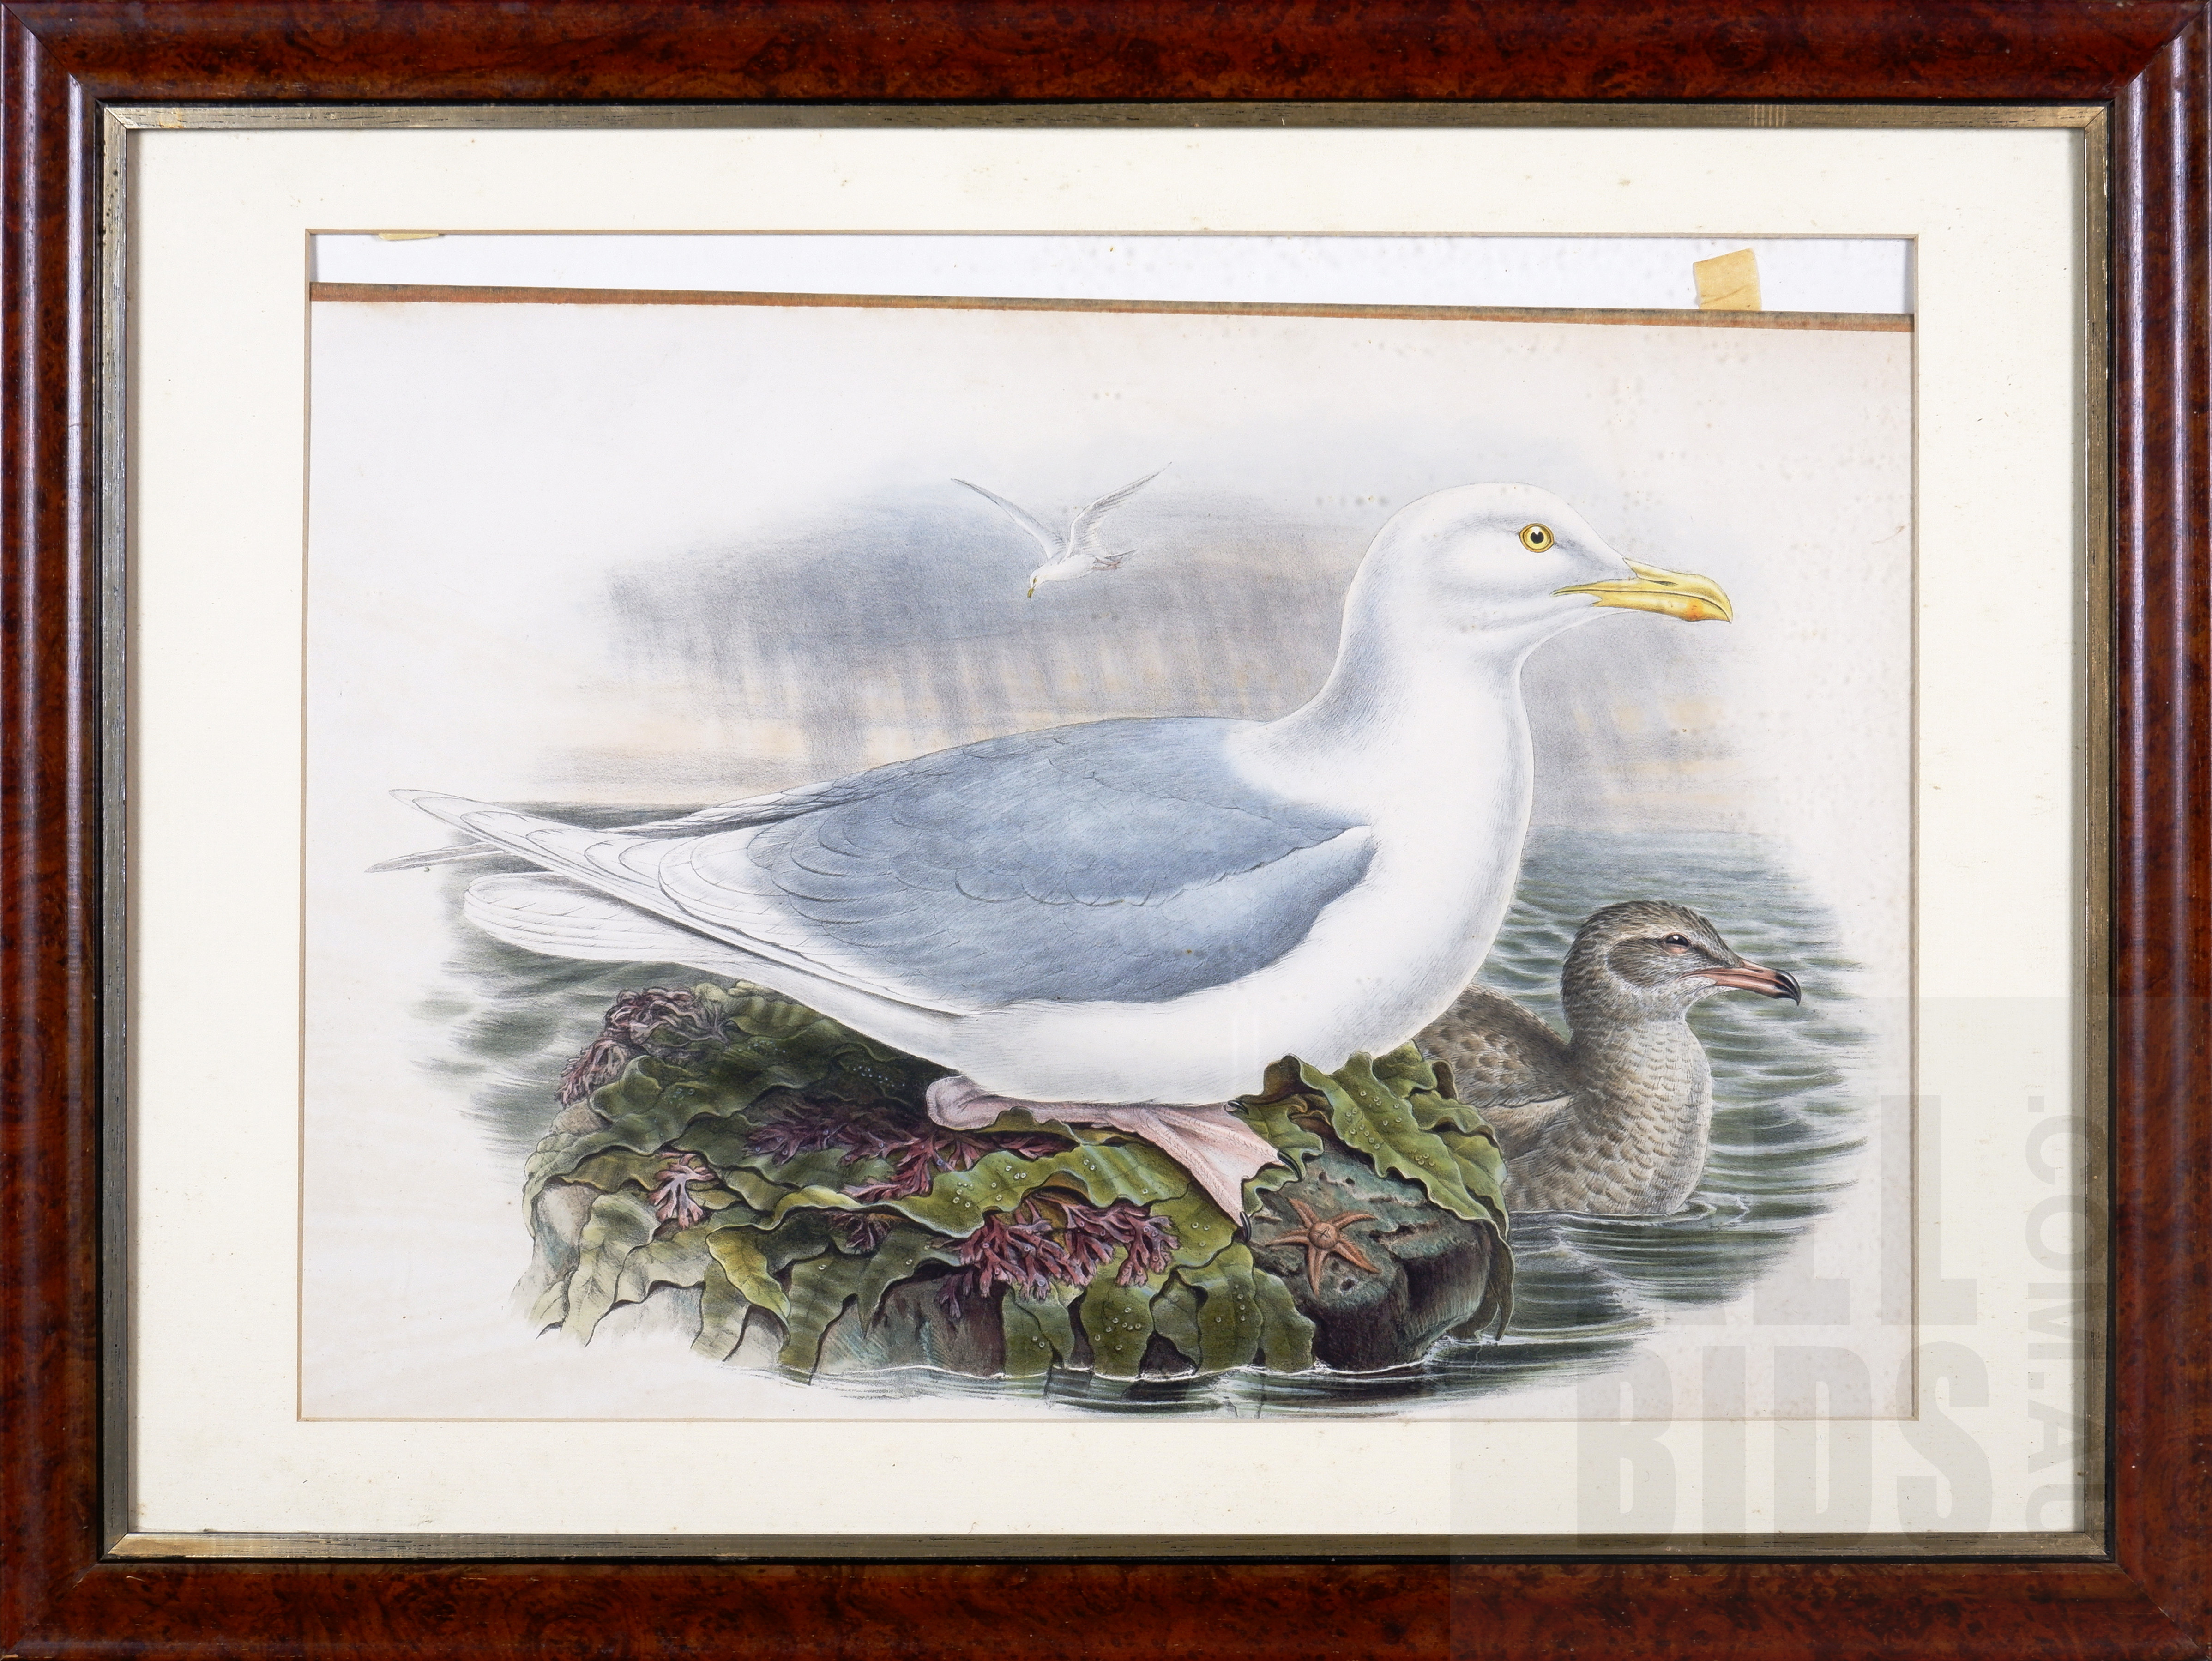 'Framed John Gould Hand-Coloured Lithograph, Larus Glaucus, 35.5 x 45 cm (image size)'